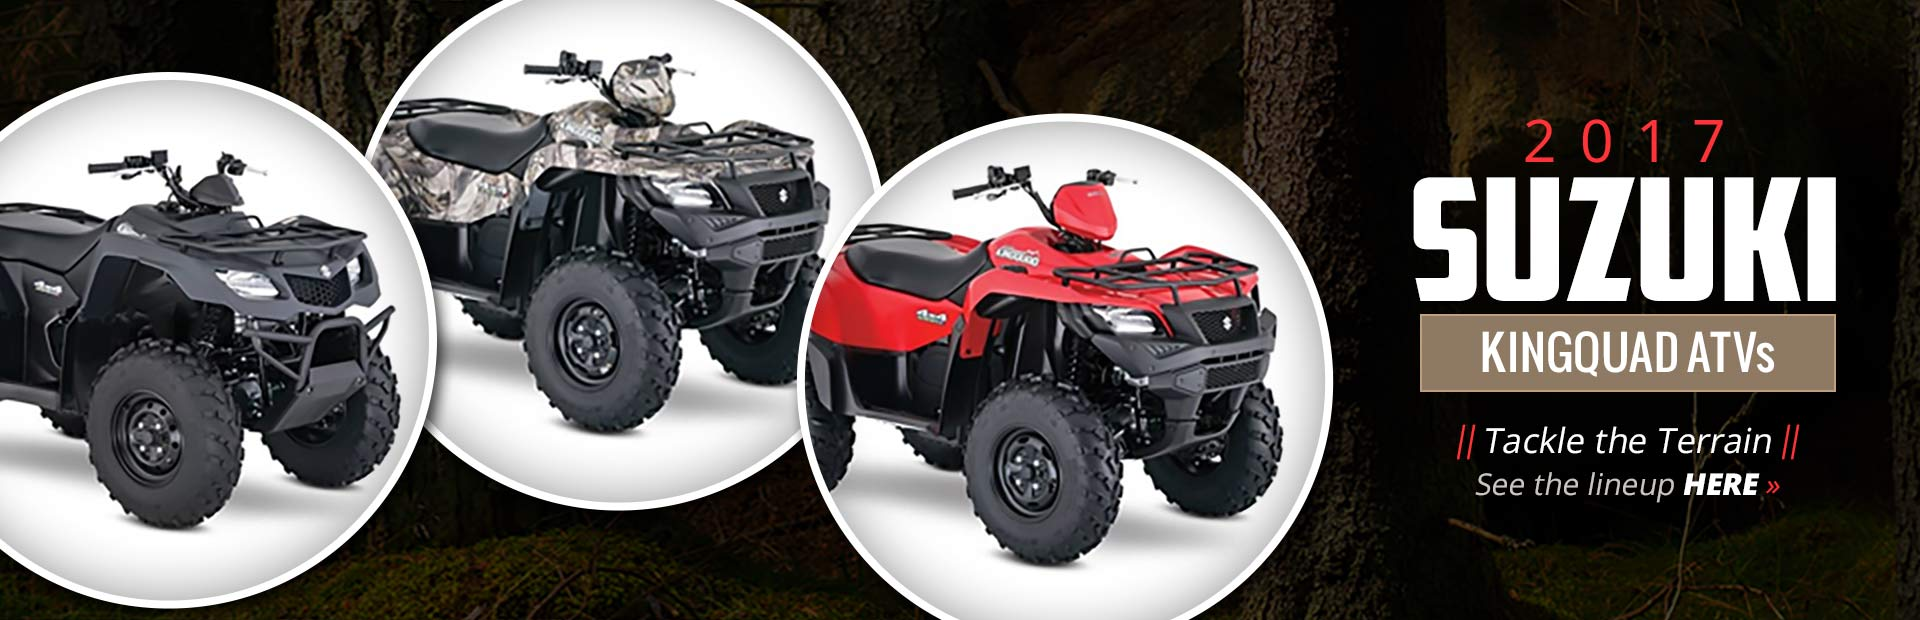 2017 Suzuki KingQuad ATVs: Click here to view the lineup.